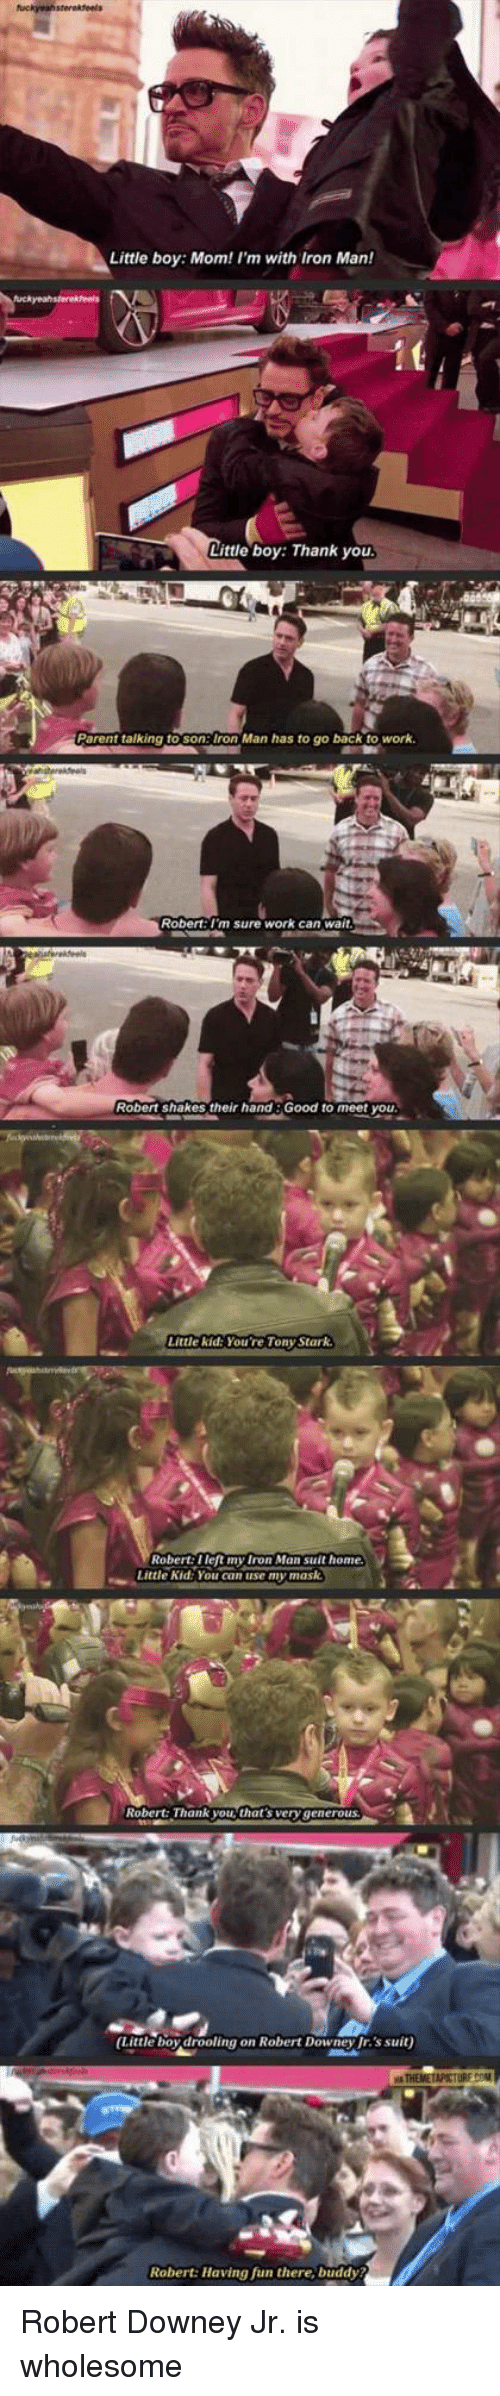 Iron Man, Robert Downey Jr., and Work: Little boy: Mom! l'm with Iron Man!  Little boy: Thank you  Parent talking to son:Iron Man has to go back to work.  Robert: I'm sure work can wait  Robert shakes their hand:Good to meet you  Little kid: You're Tony Stark  Robert: Ileft my Iron Man suit home  Little Kid: You can use my mask  Robert: Thank you, that's very  generous  Little boy drooling on Robert Downey Jr.'s suit)  Robert: Having fun there, buddy <p>Robert Downey Jr. is wholesome</p>